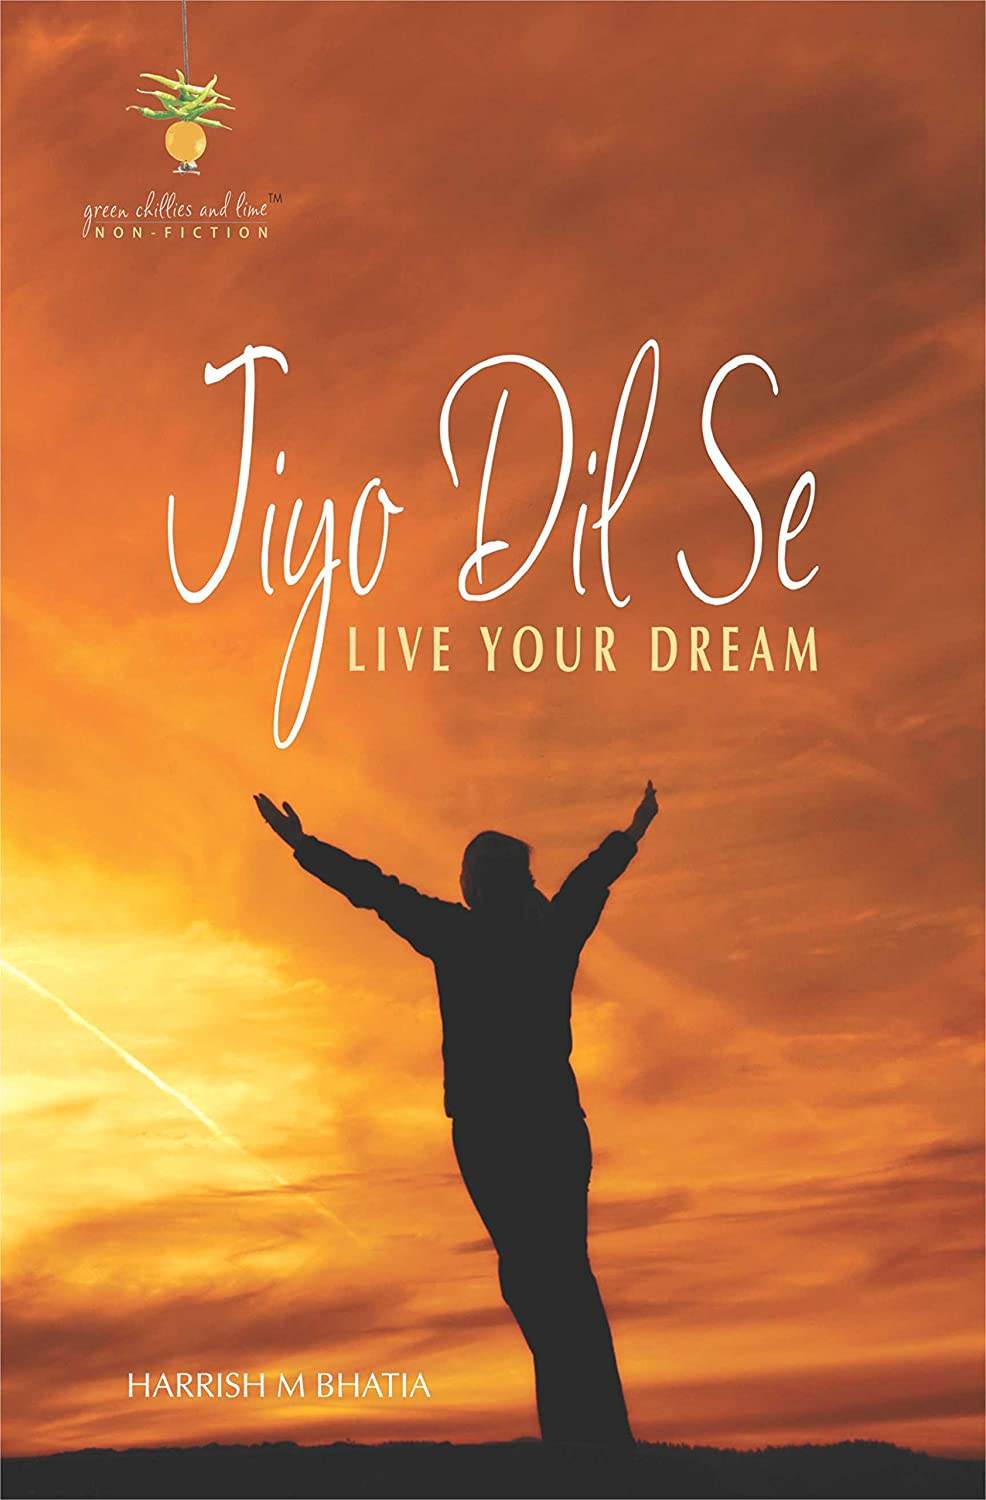 Jiyo Dil Se Live Your Dream Amazon In Electronics